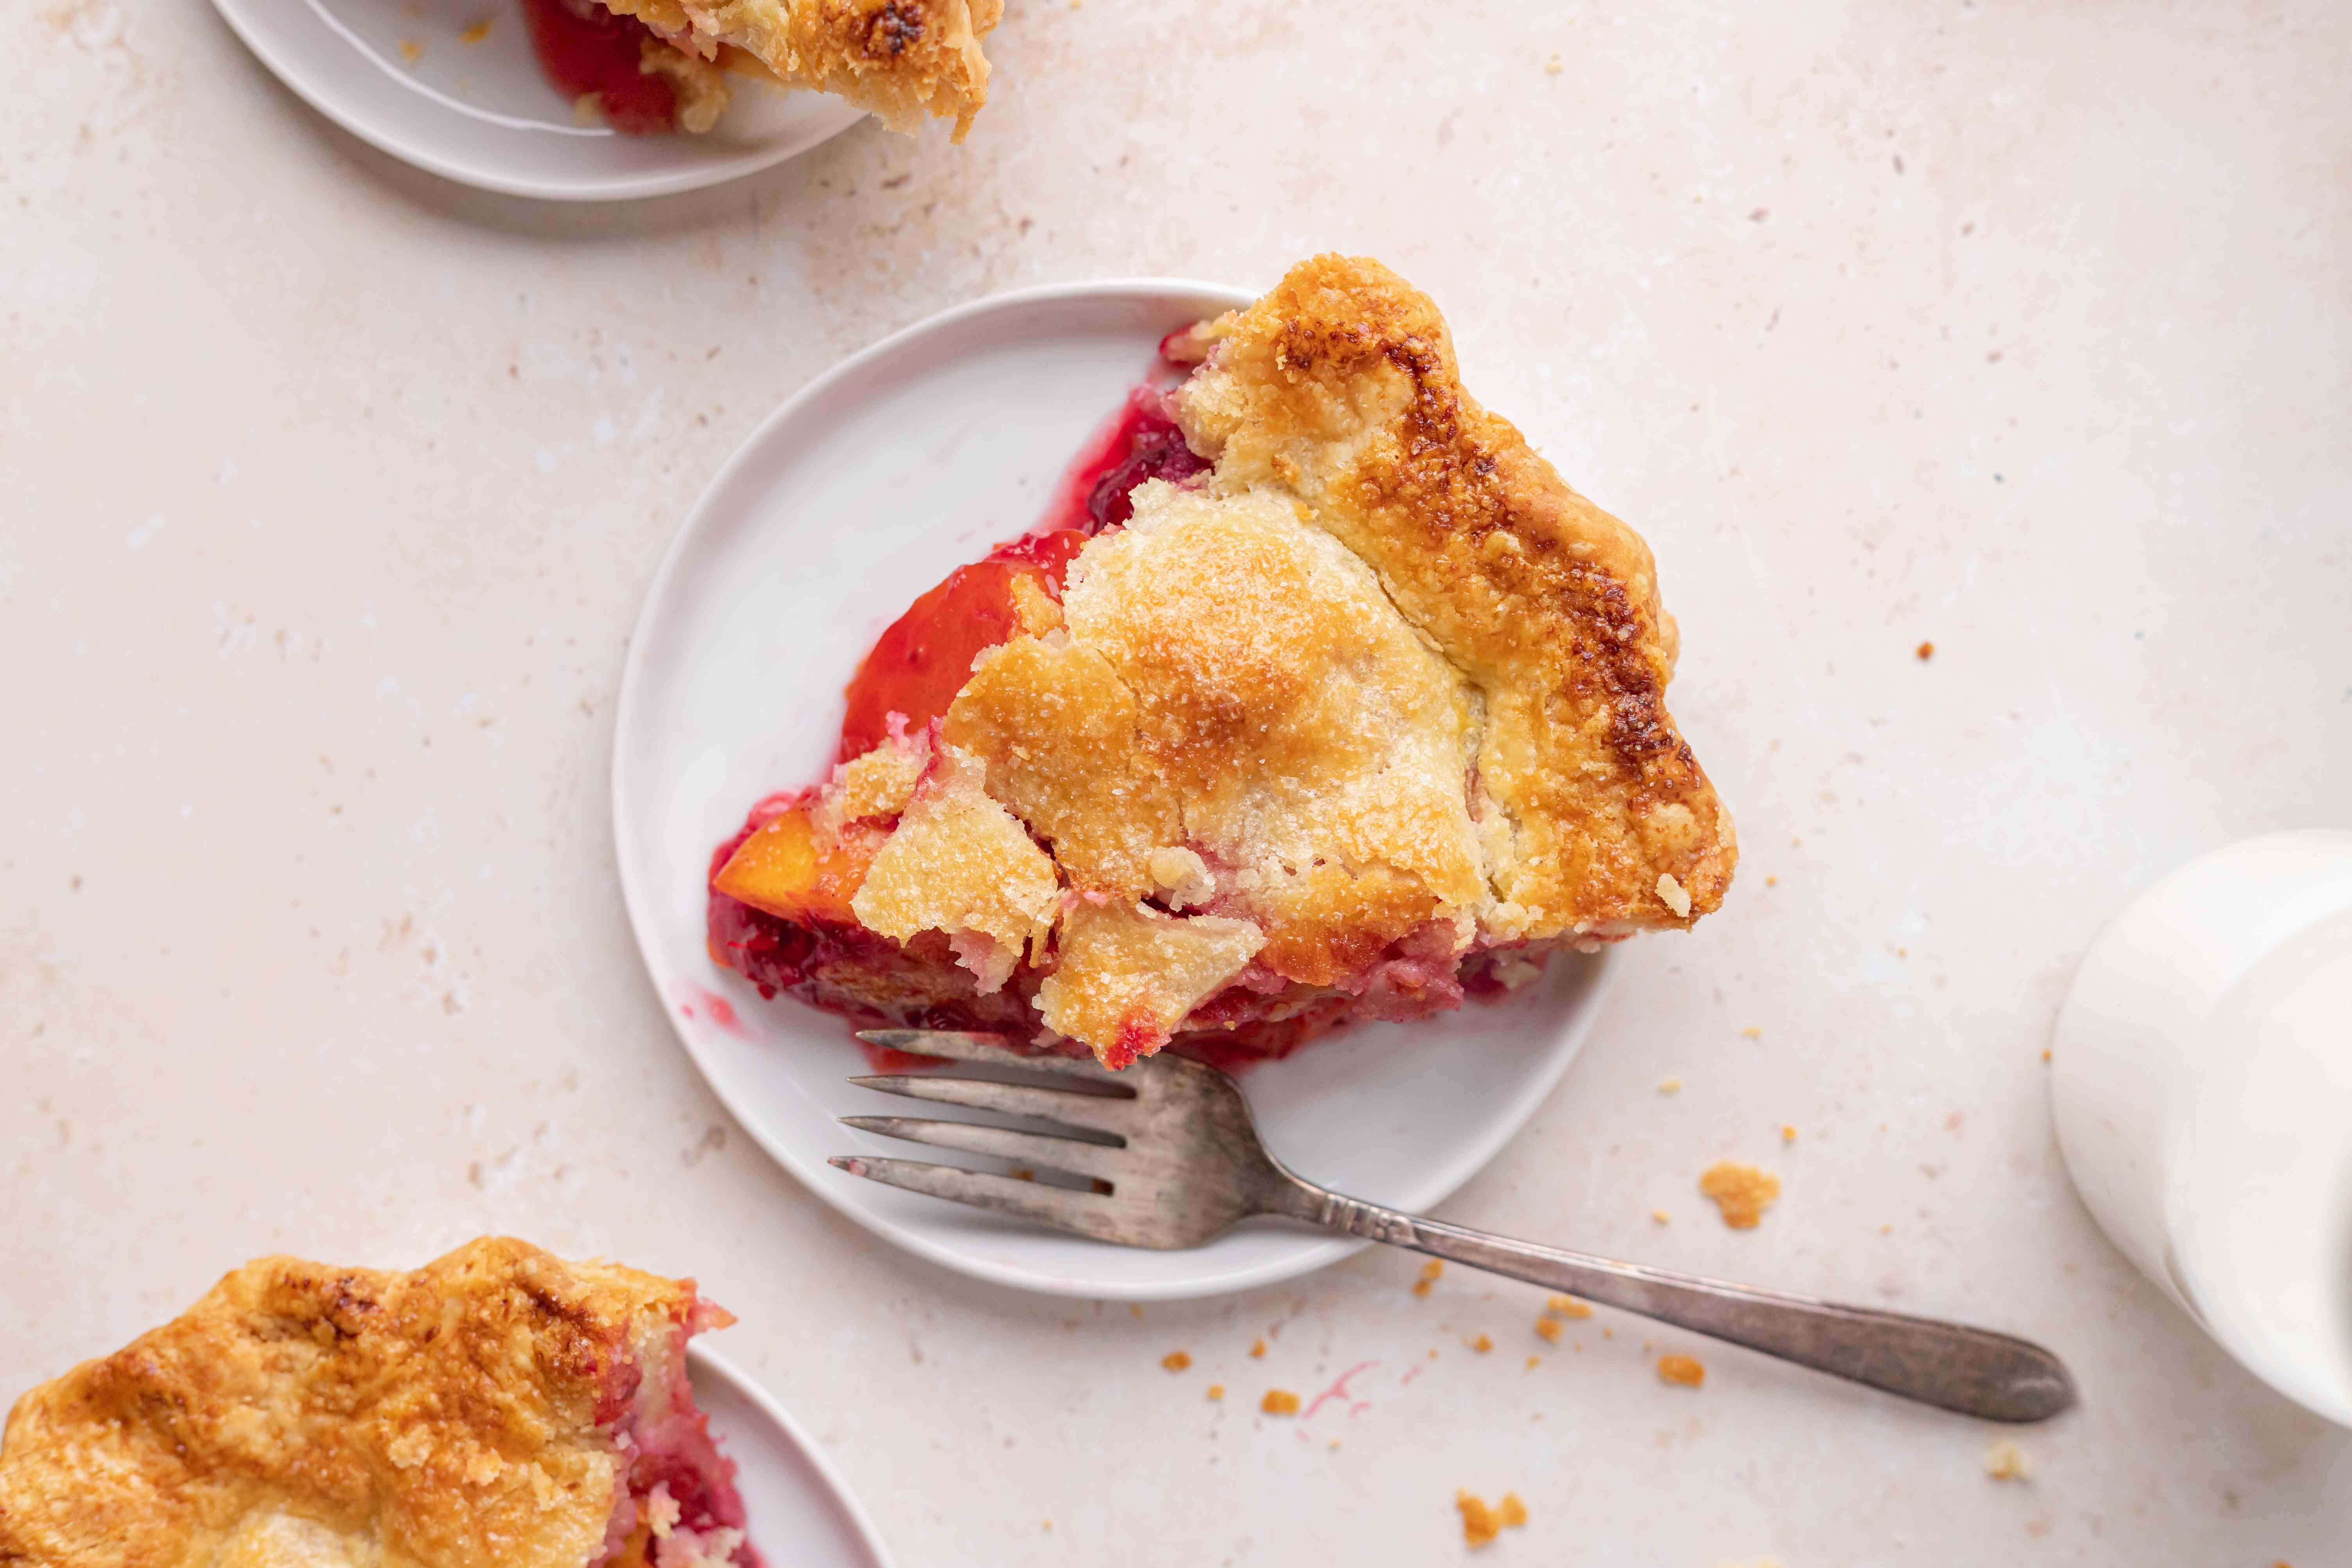 Overhead view of a slice of stone fruit and berry pie.